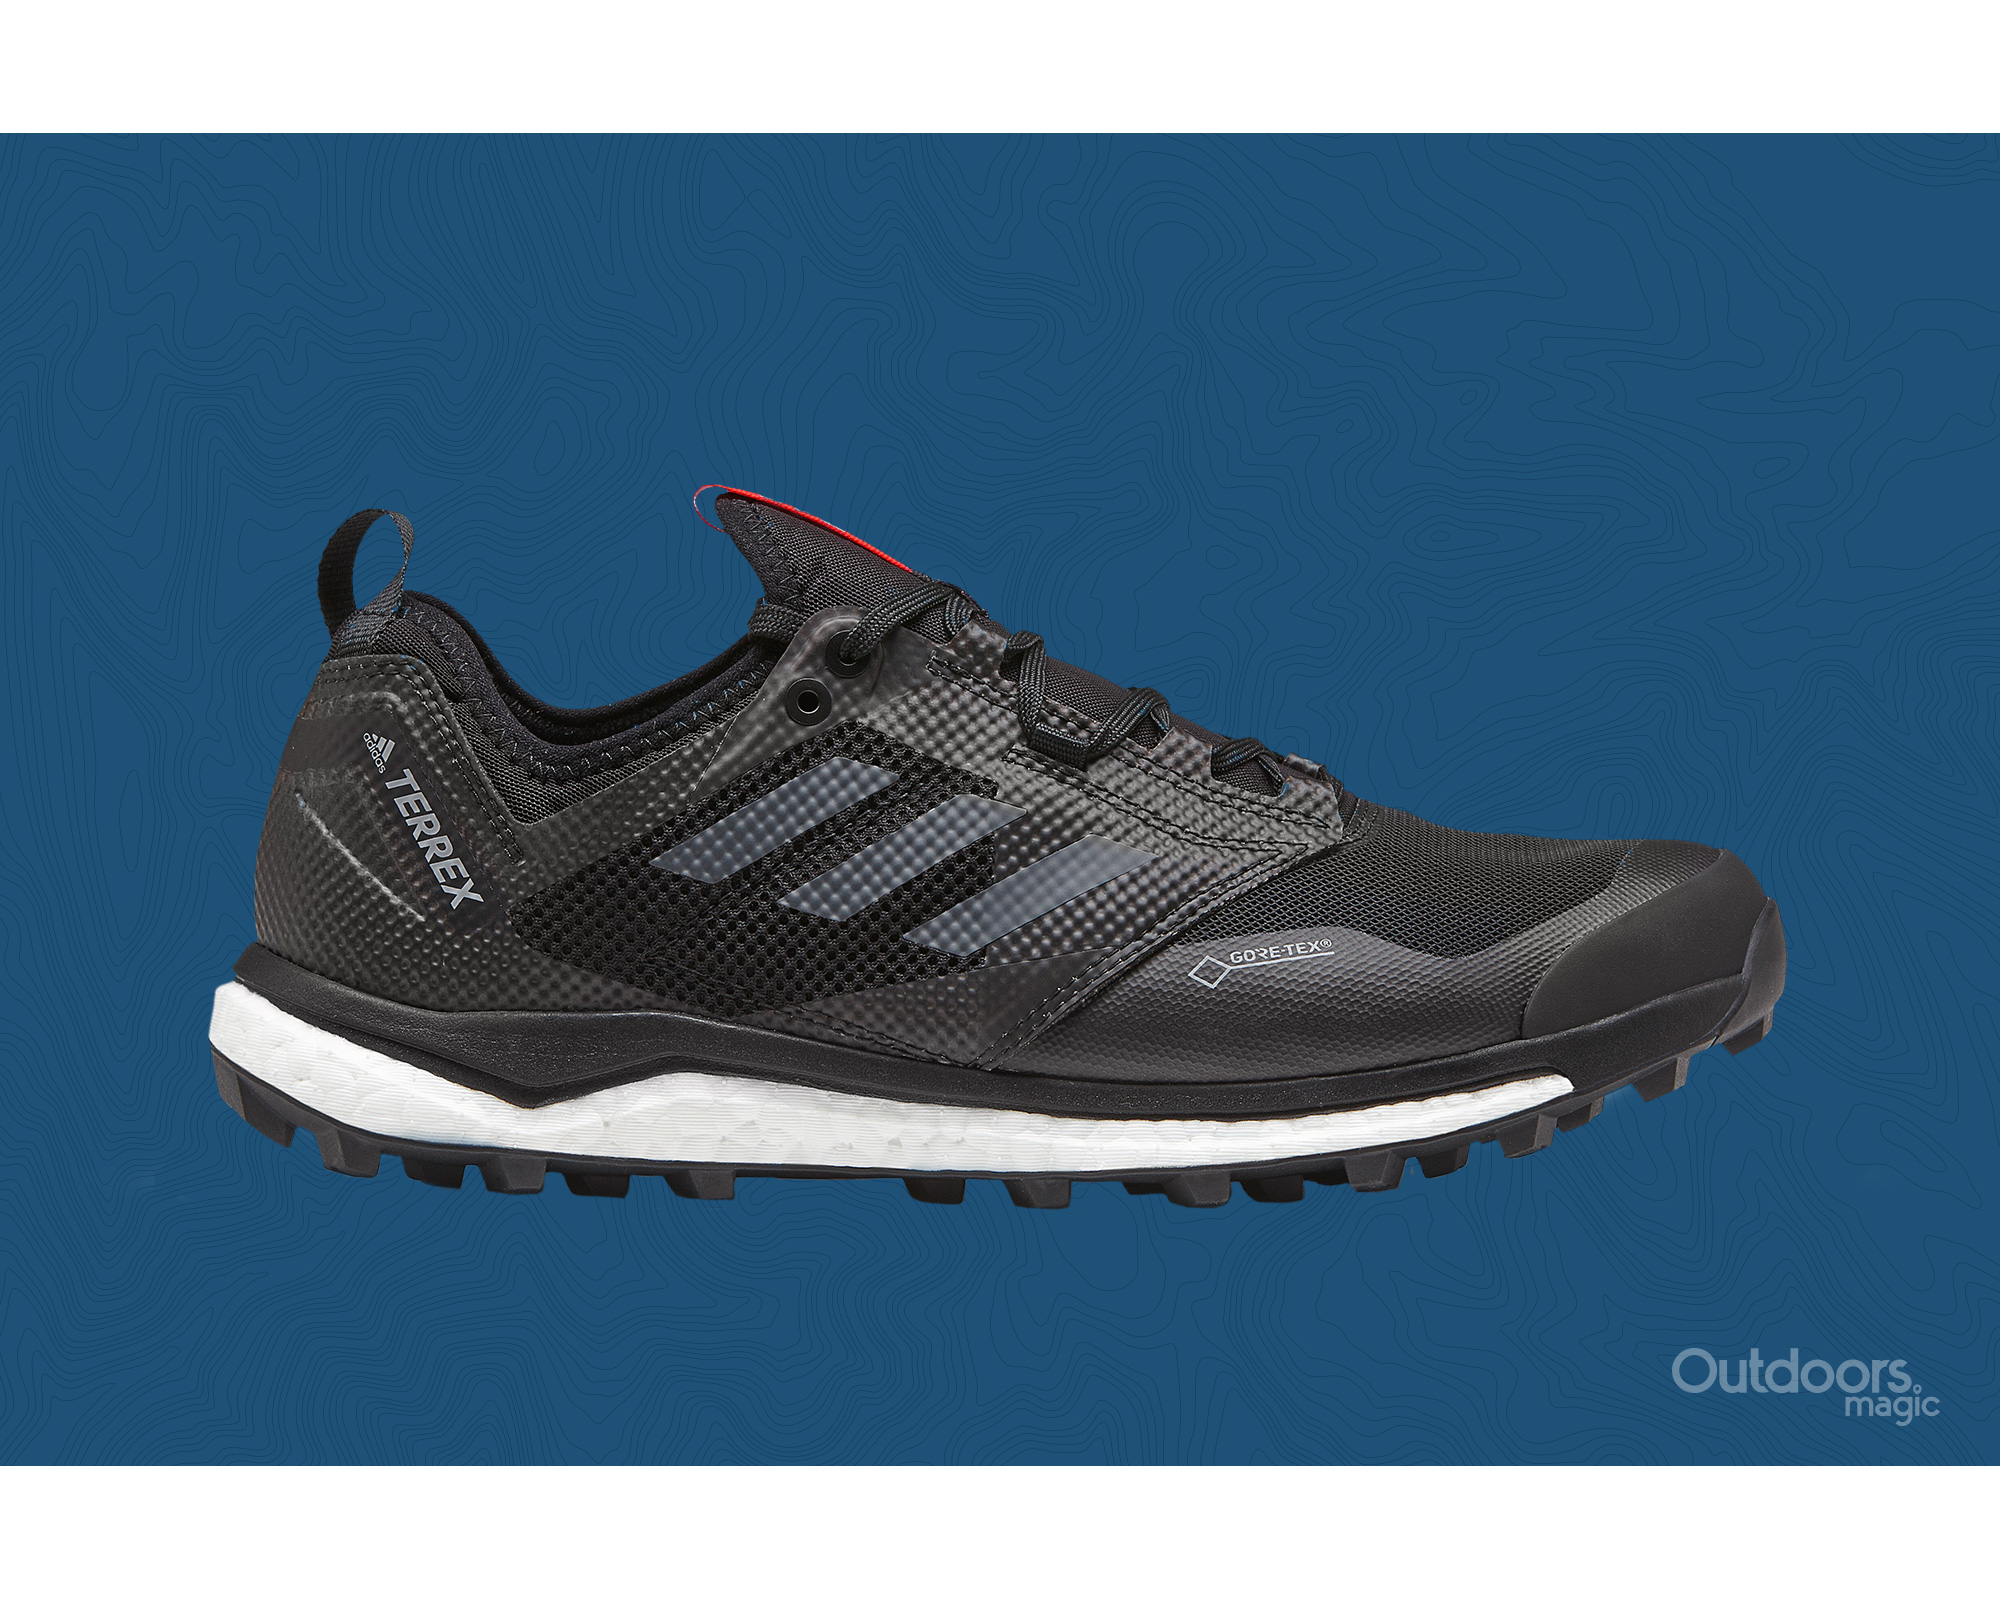 Best Trail Running Shoes 2020 | Top 10